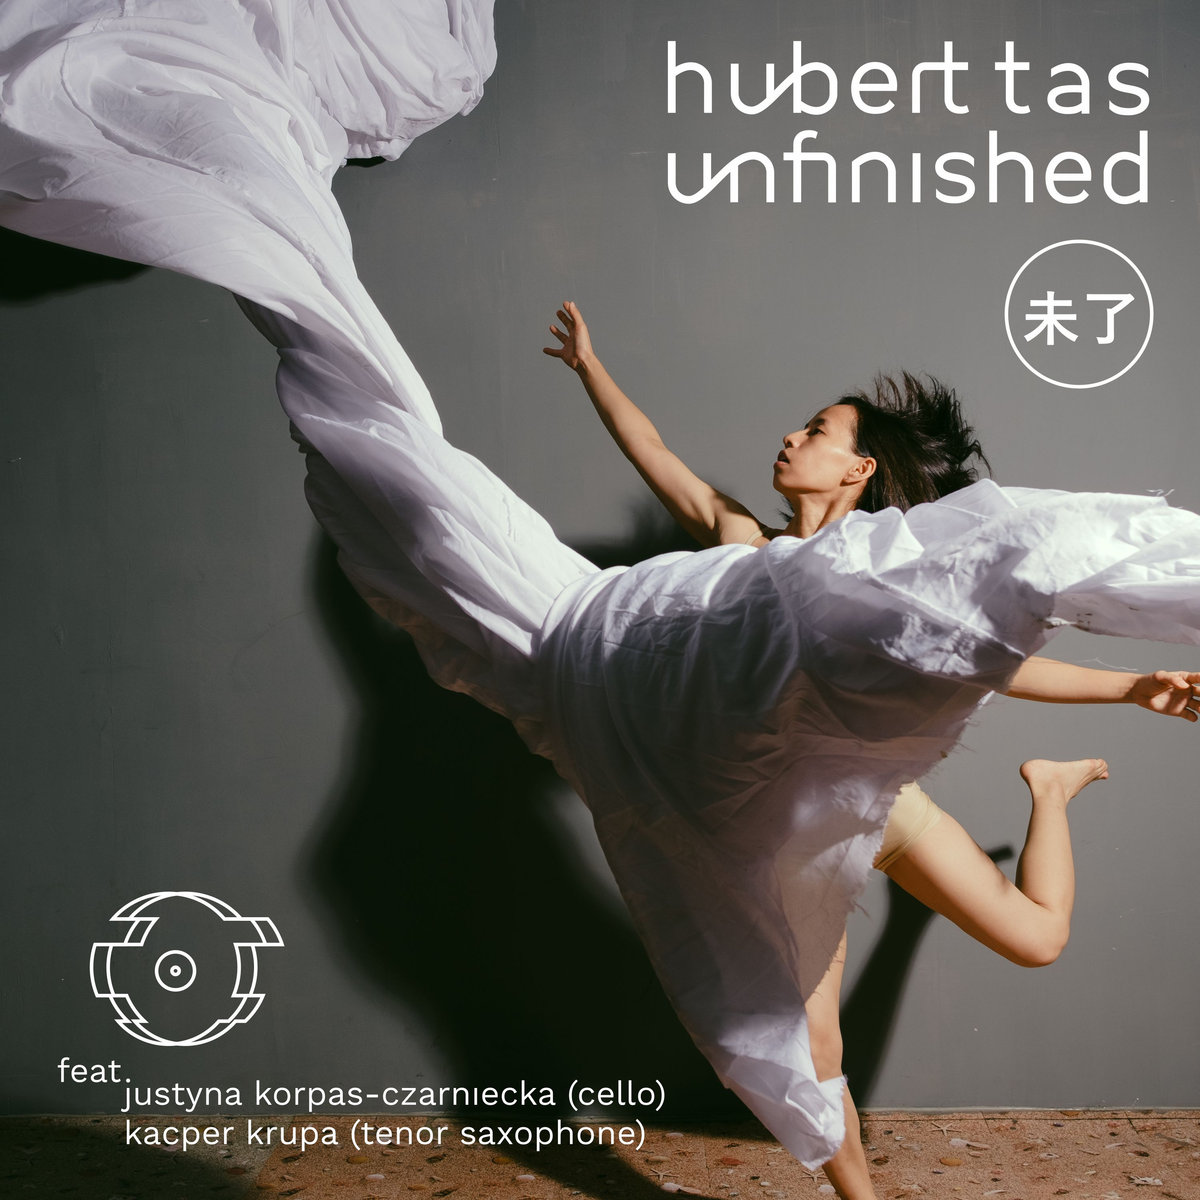 Hubert Tas – Unfinished / 未了